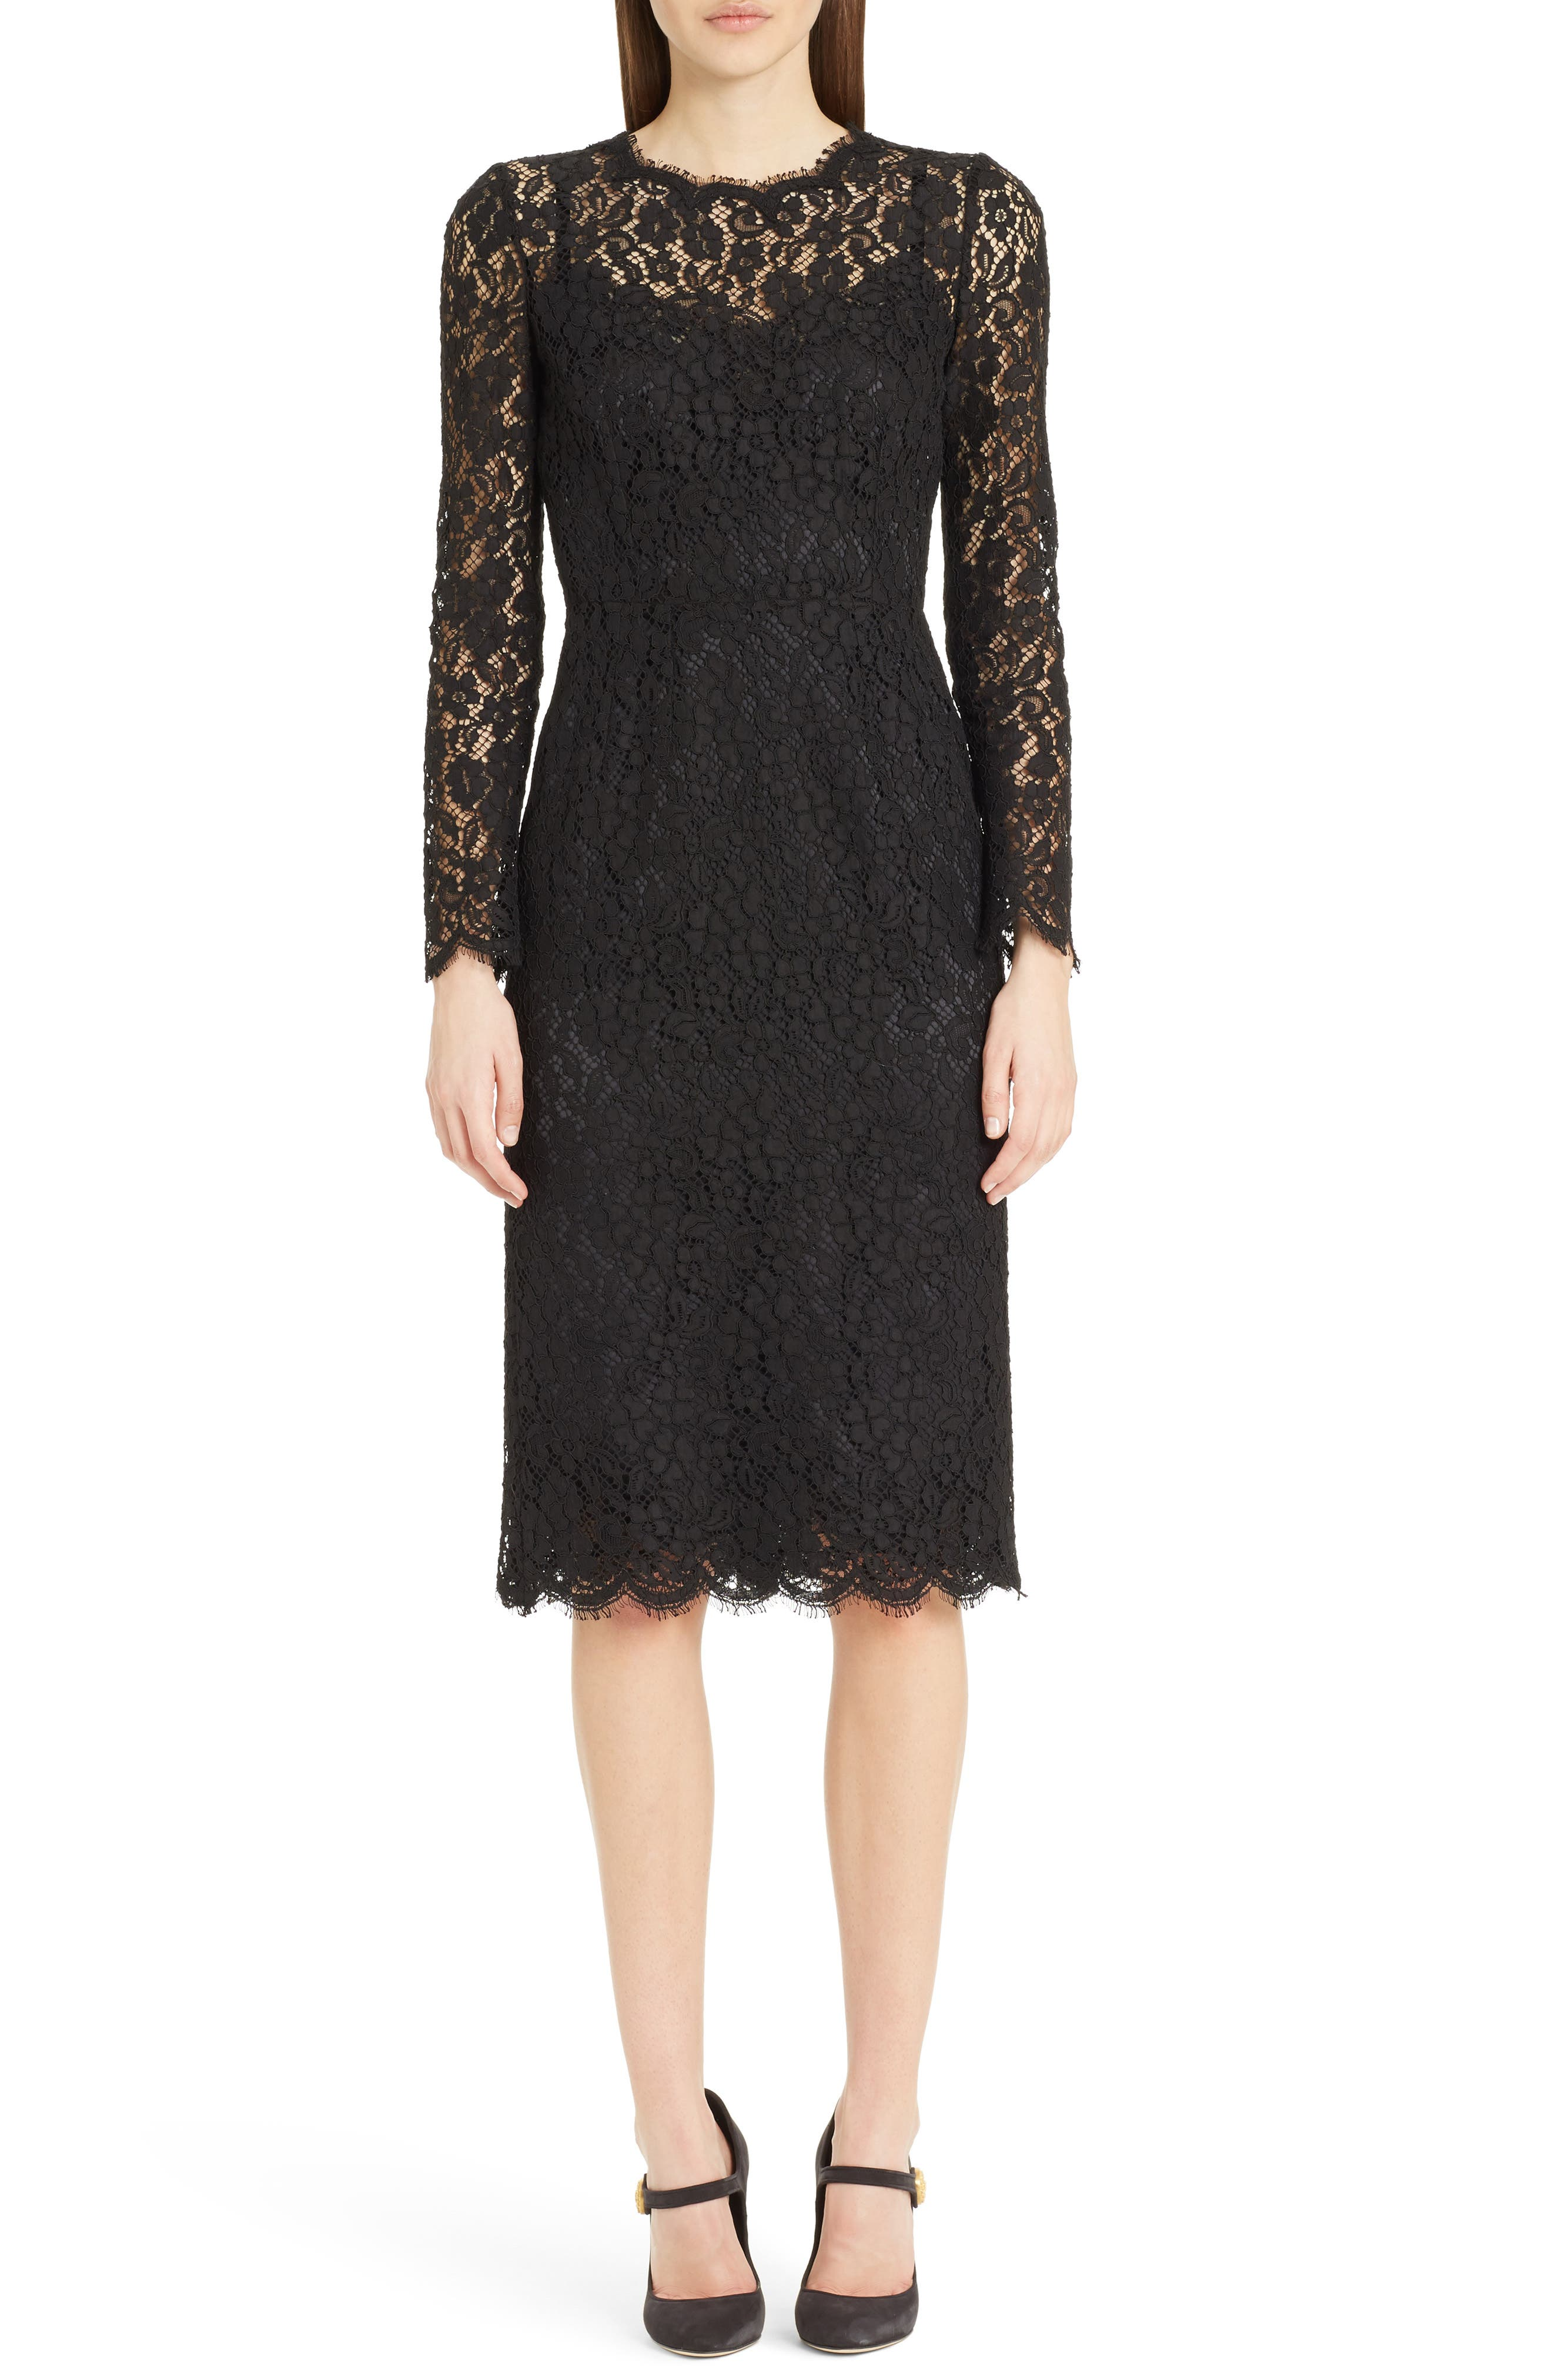 Dolce&Gabbana Lace Sheath Dress